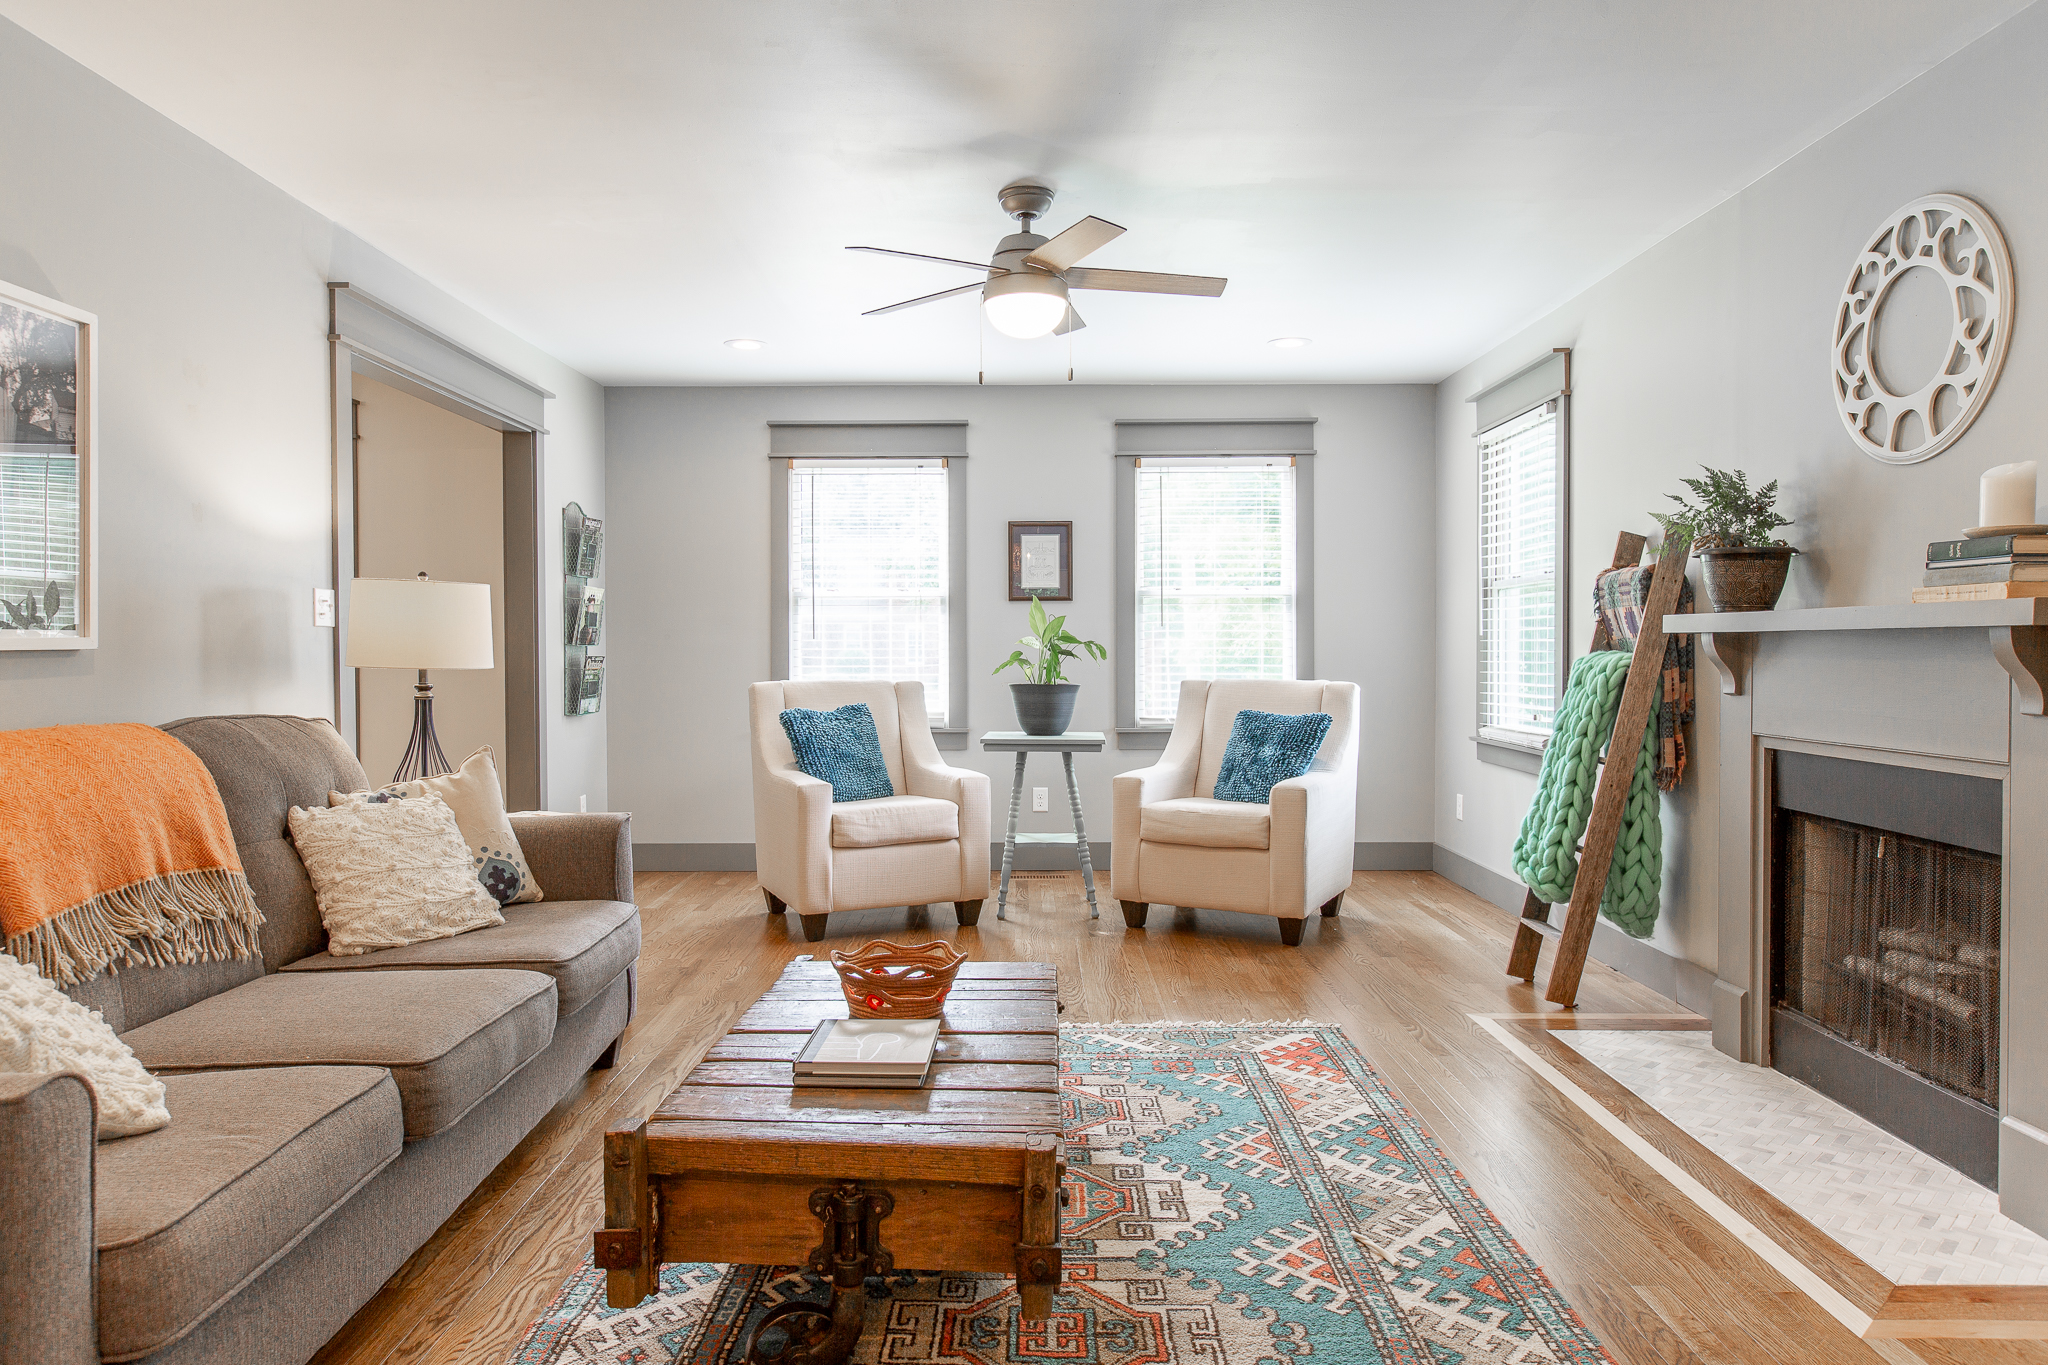 Chattanooga Real Estate Elizabeth Moyer Homes And Design Keller Williams Realty Serving Your Real Estate Needs In Chattanooga And The Surrounding Areas